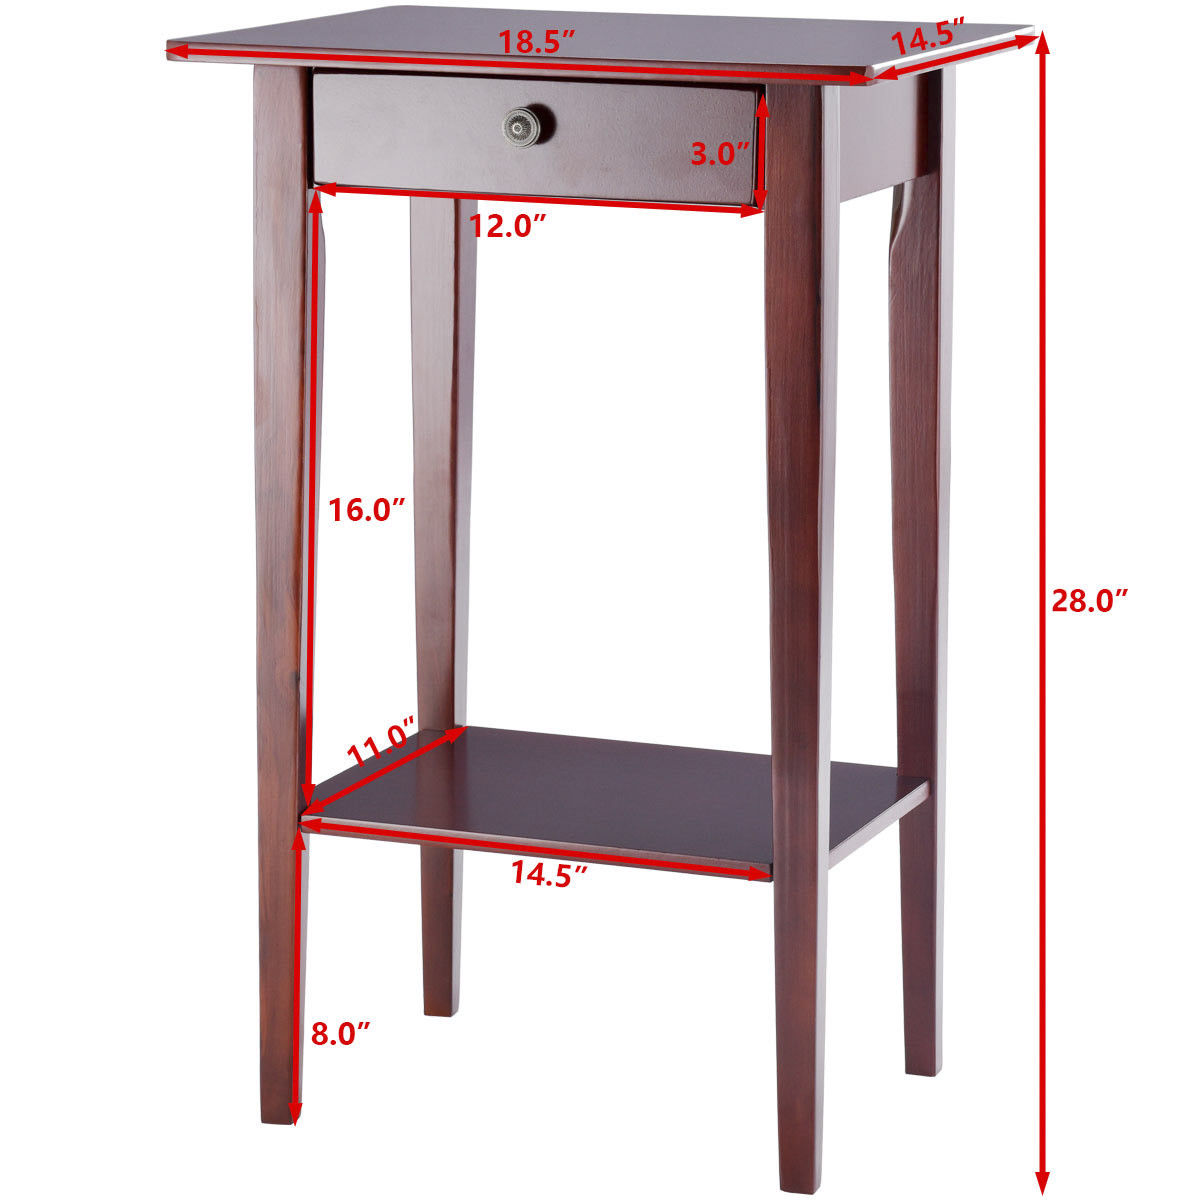 way end table tall wood side accent style telephone stand drawer shelf built bbq ideas home goods rugs round silver outdoor top covers dining set with umbrella coffee accessories